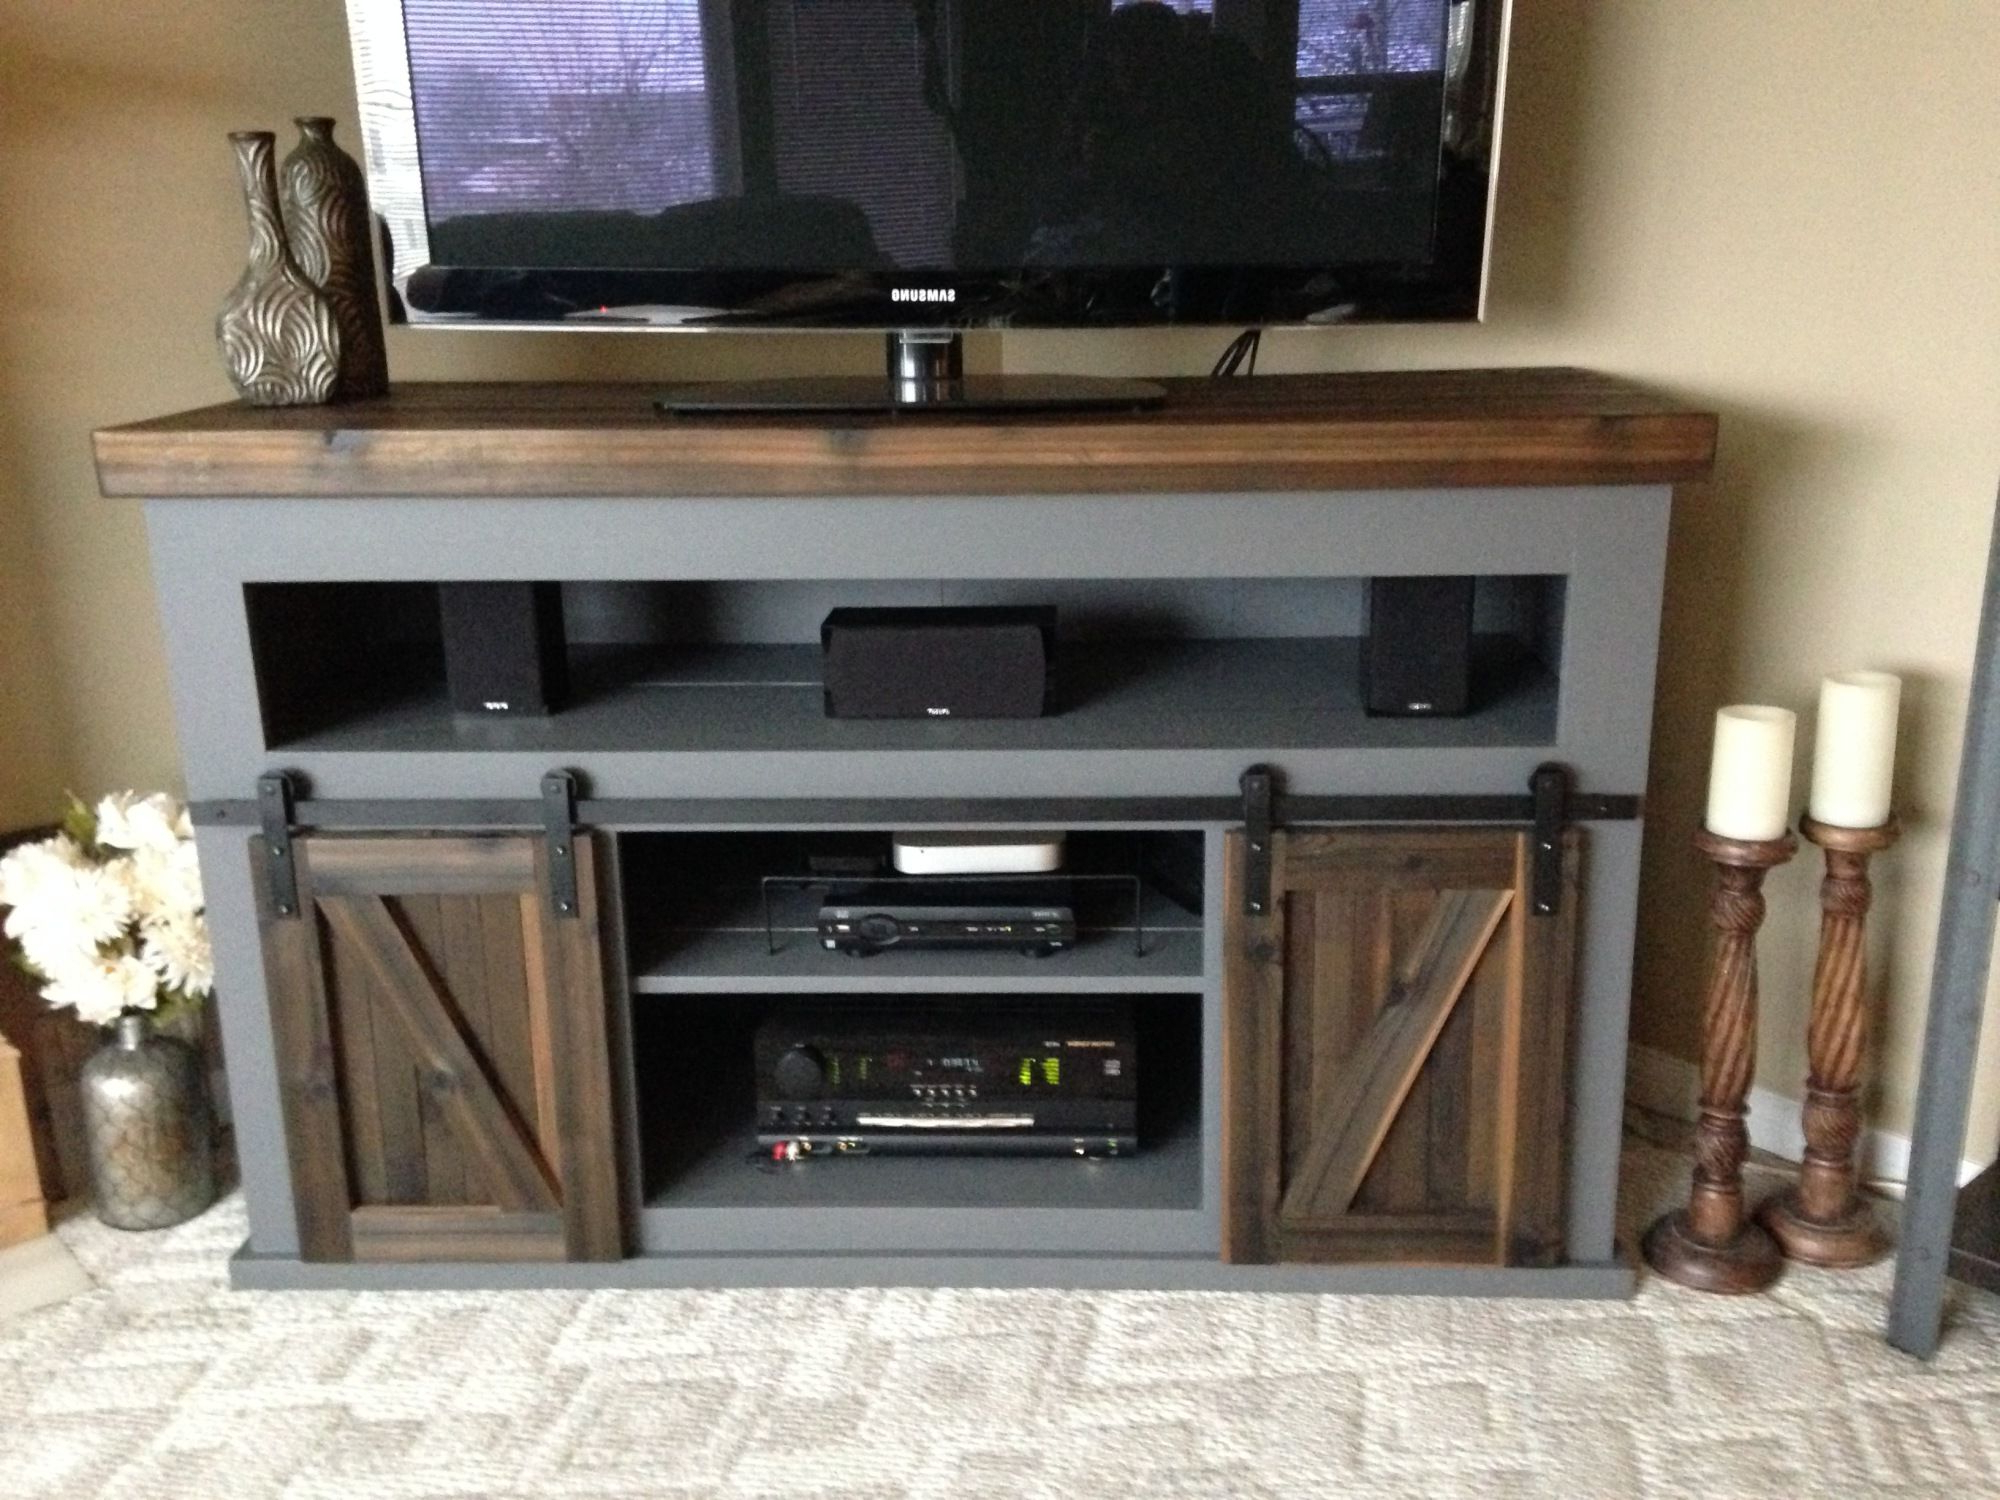 Big Tv Stands Furniture In Preferred Bedroom Big Screen Tv Stands Furniture Dark Wood Tv Unit Tv Cabinet (View 5 of 20)